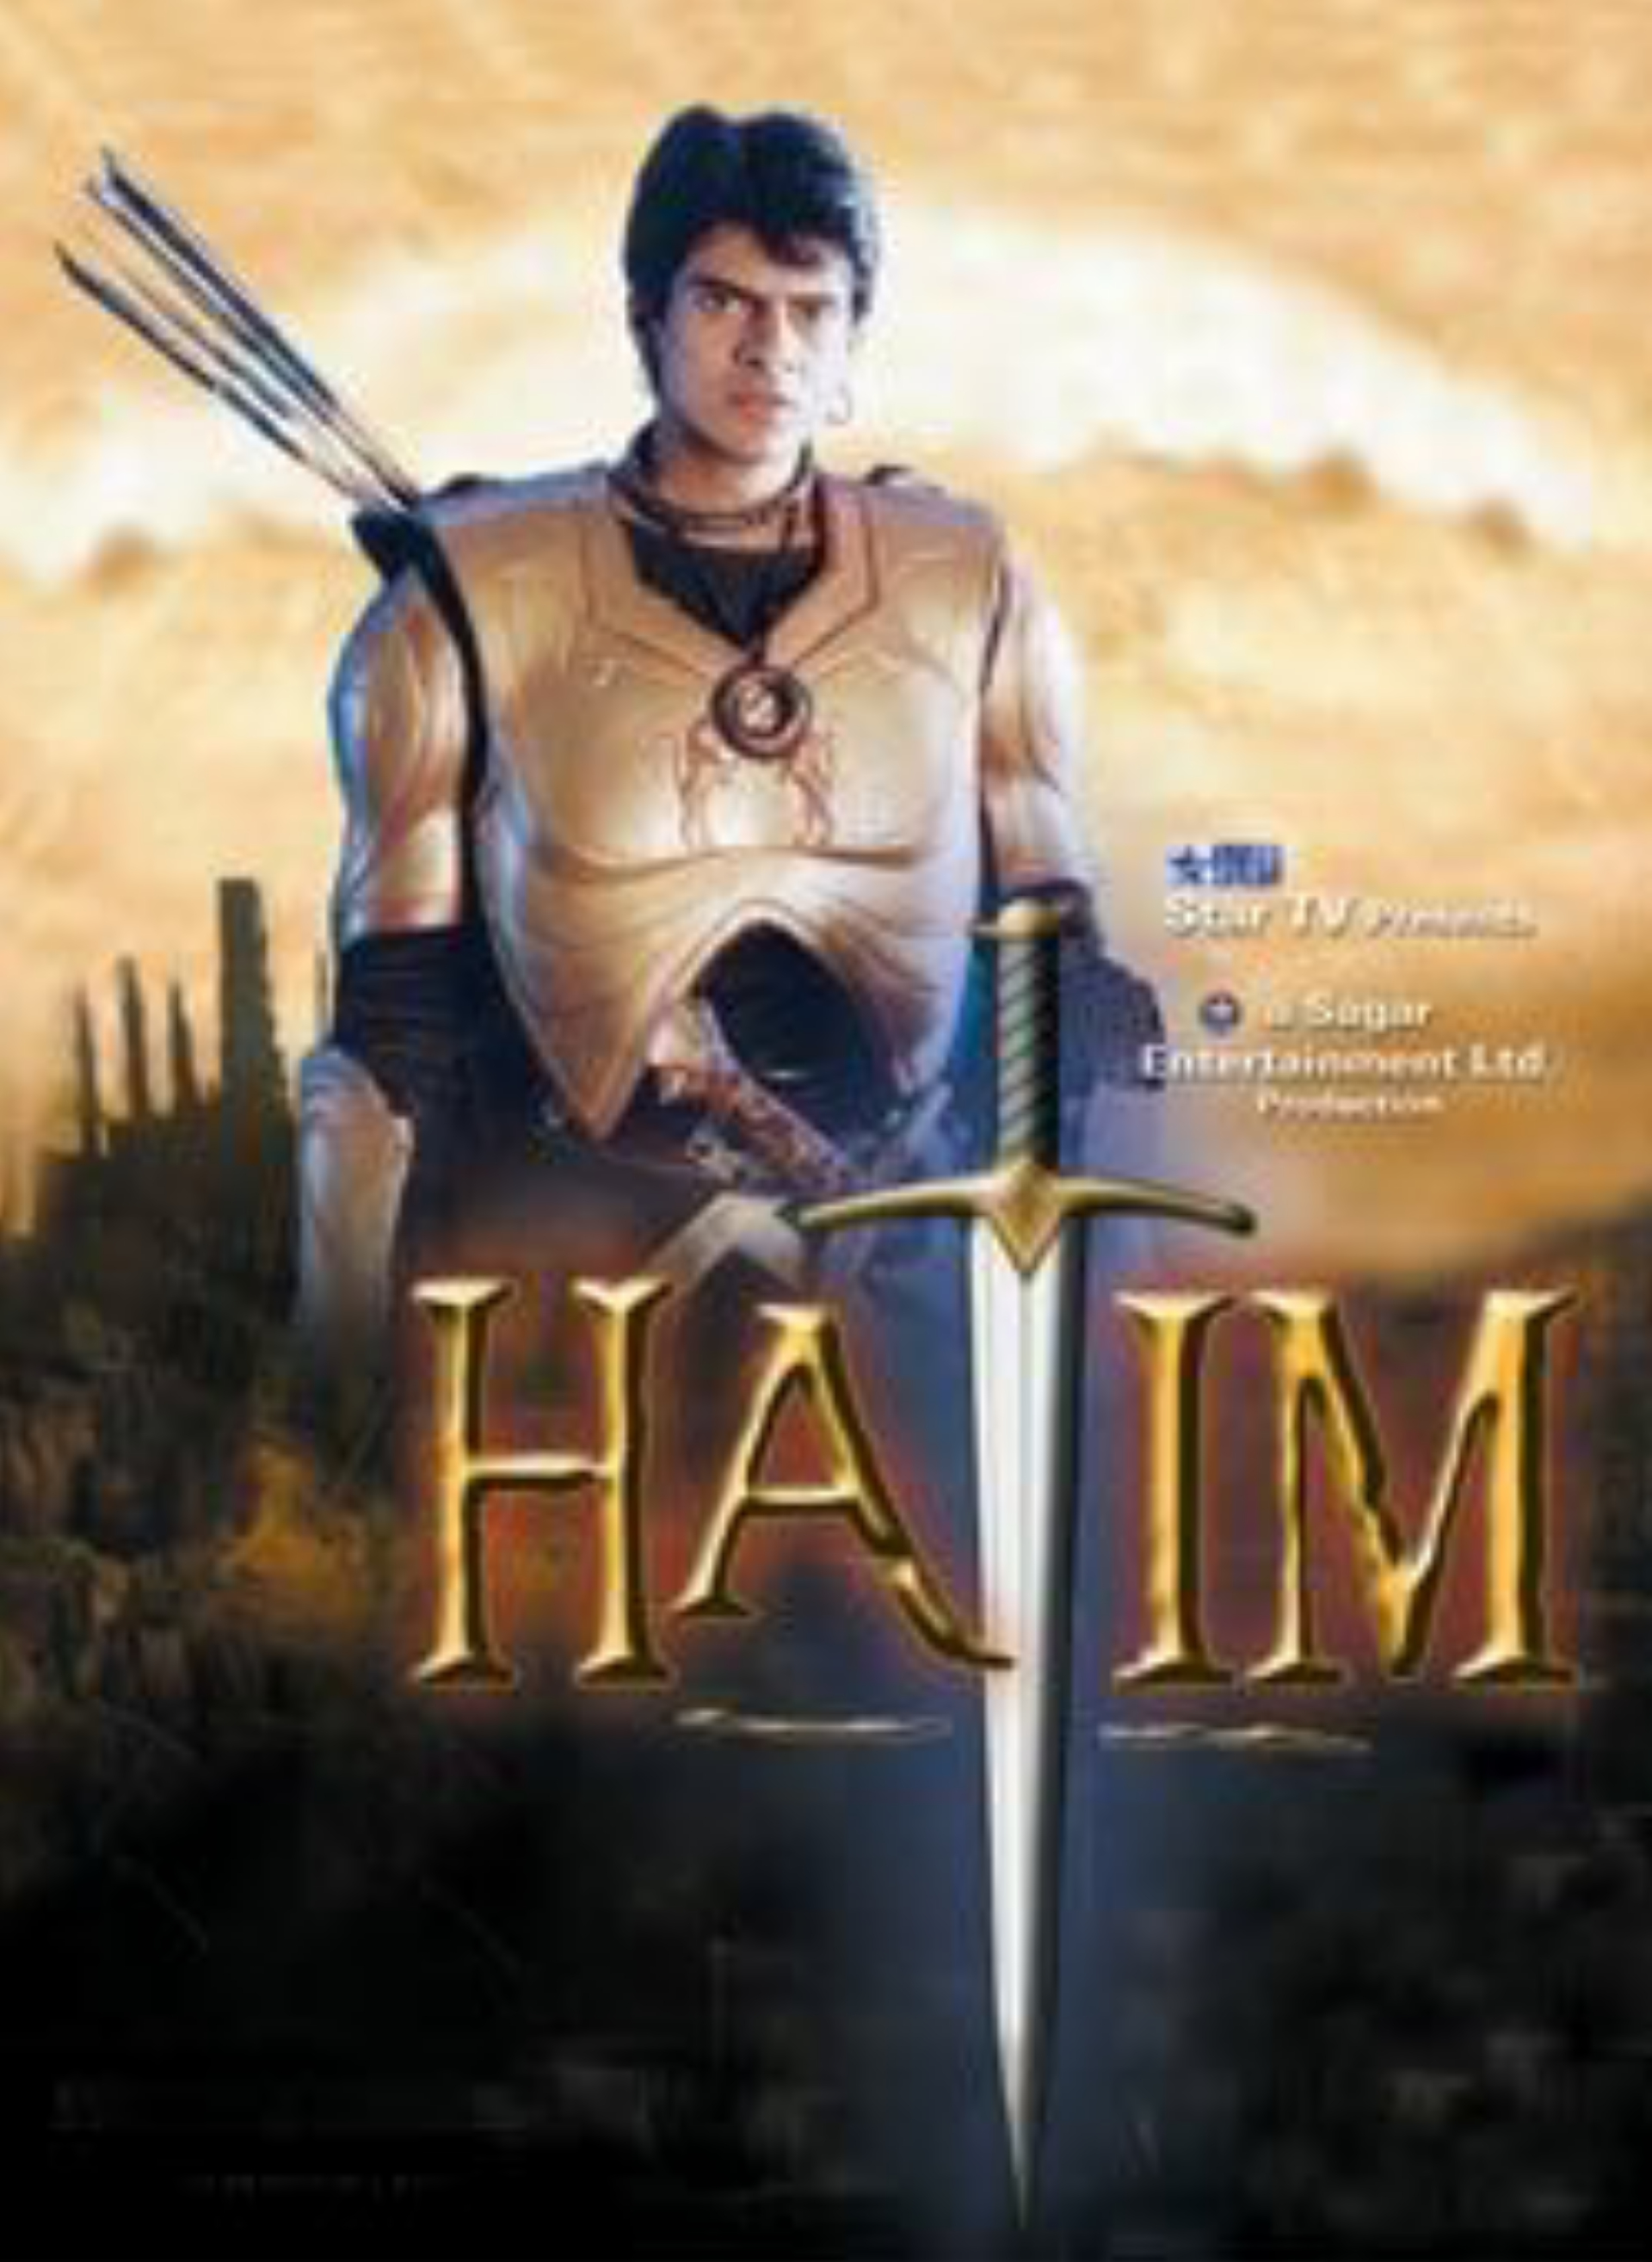 Hatim (TV Series 2003–2004) - IMDb